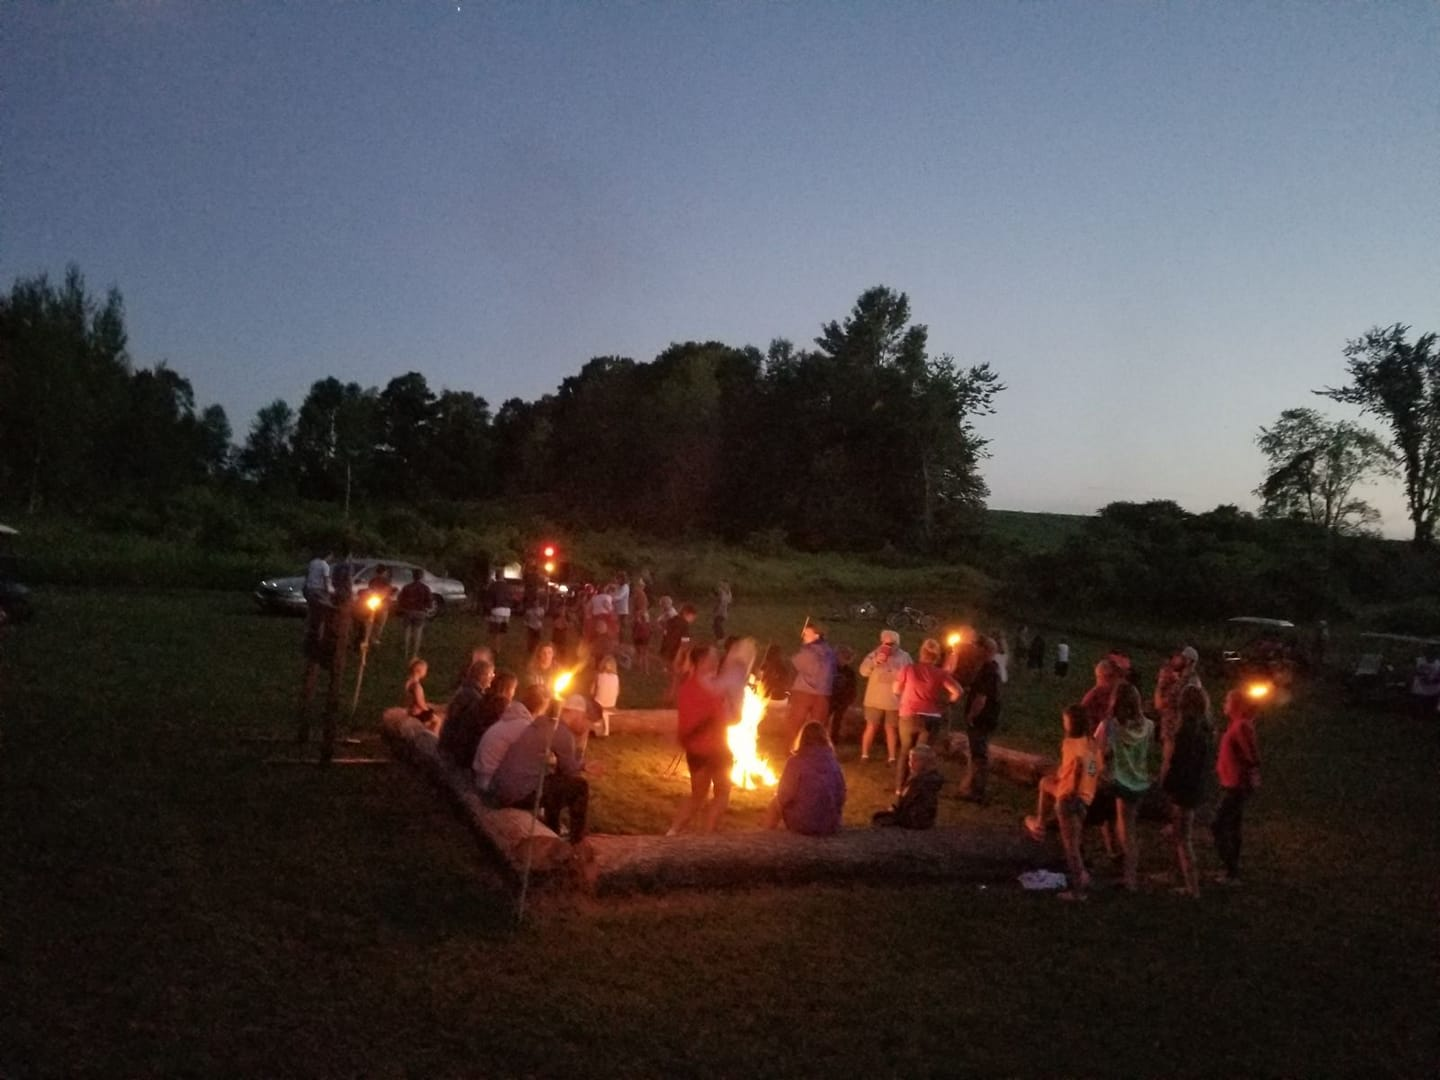 Bonfire at entrance to Haunted Trail